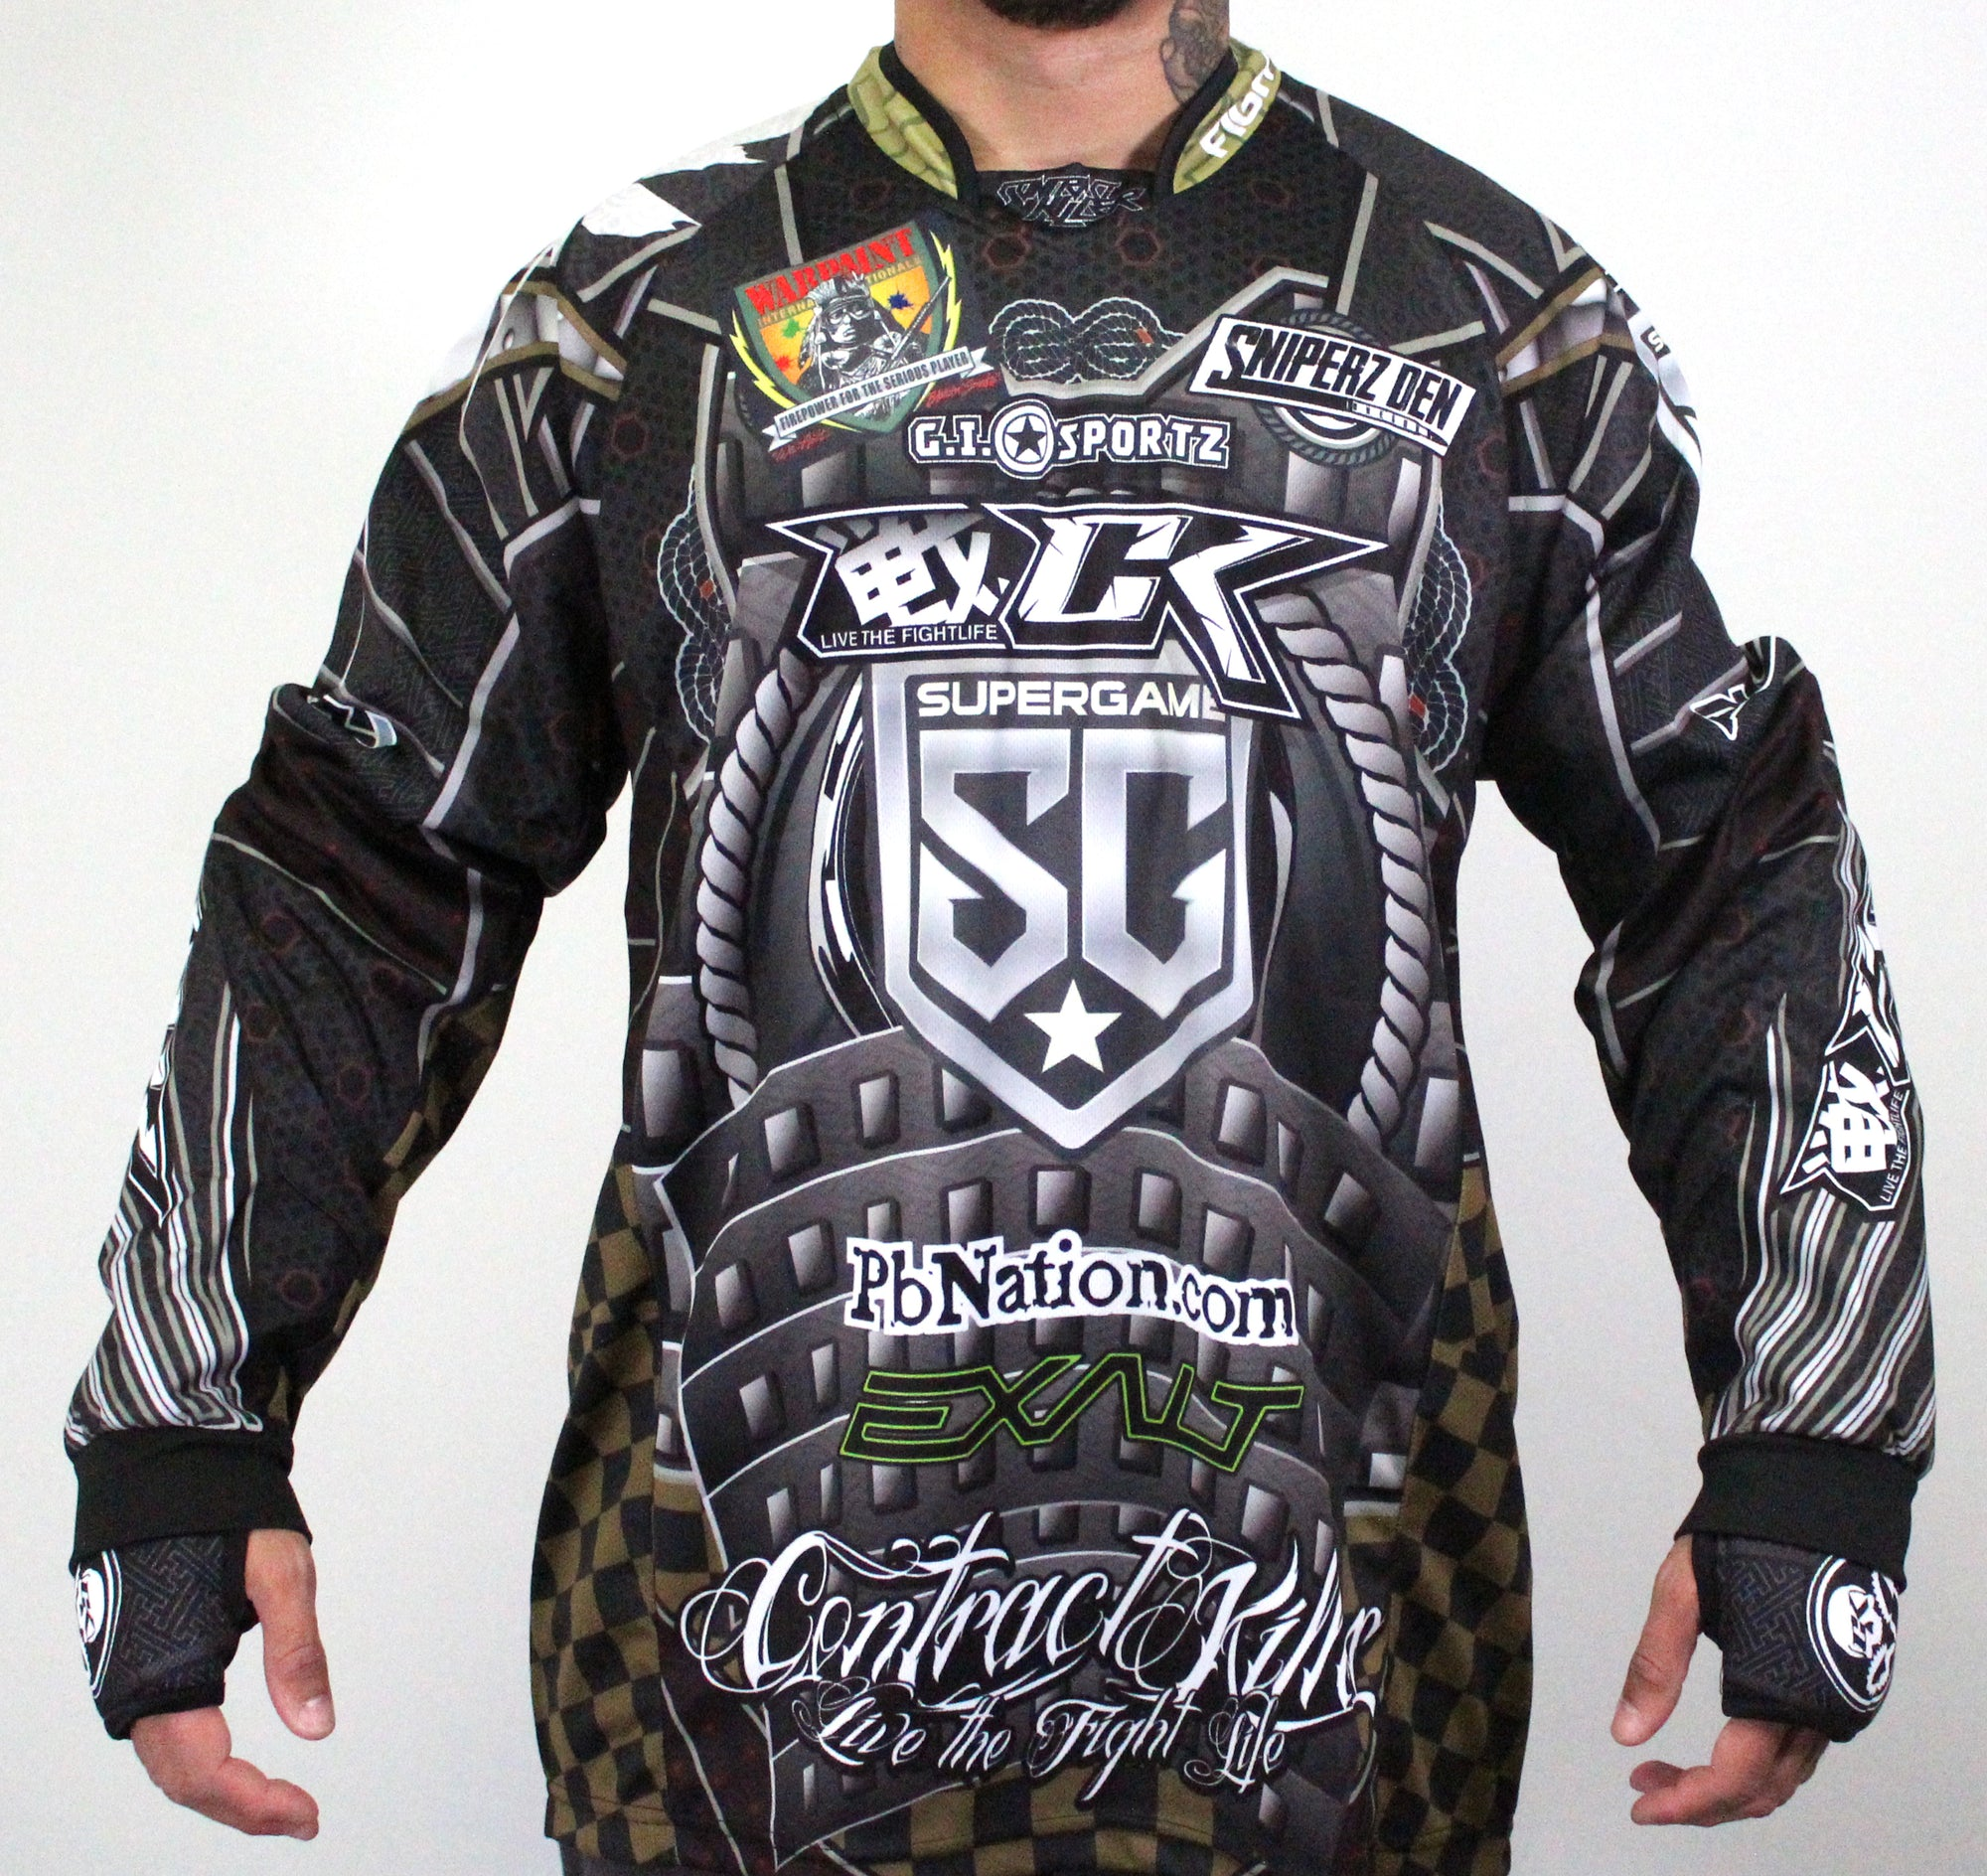 2020 Super Game Oregon Paintball Jersey -  SG53 Design by CK FIGHTLIFE - PREORDER